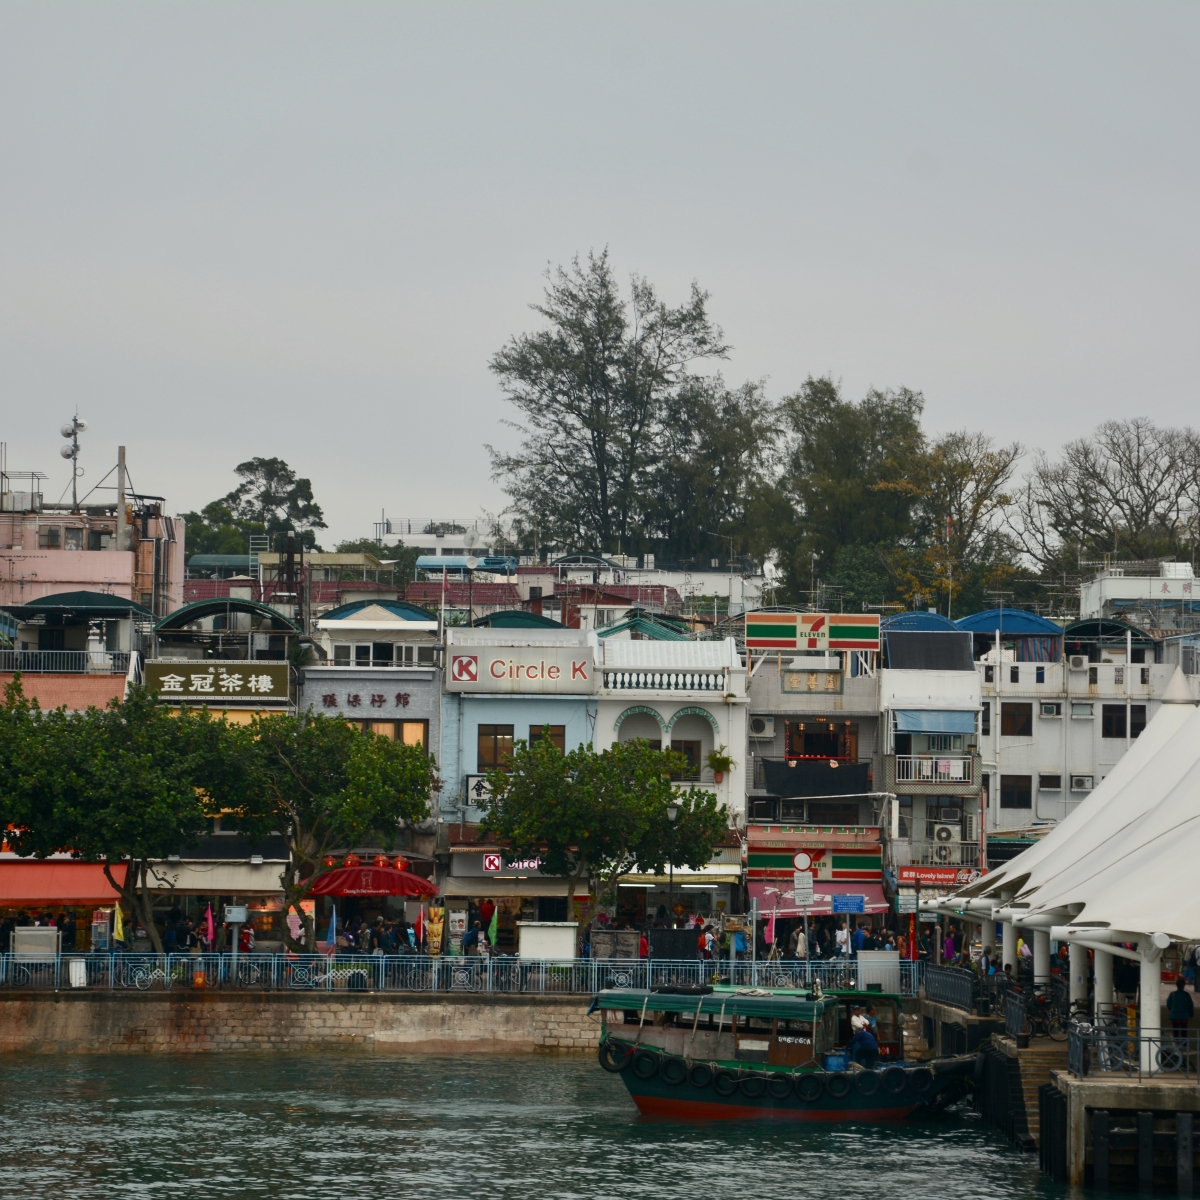 Cheung Chau, Hong Kong | Wandering across the Rustic Island of Cheung Chaucontinued